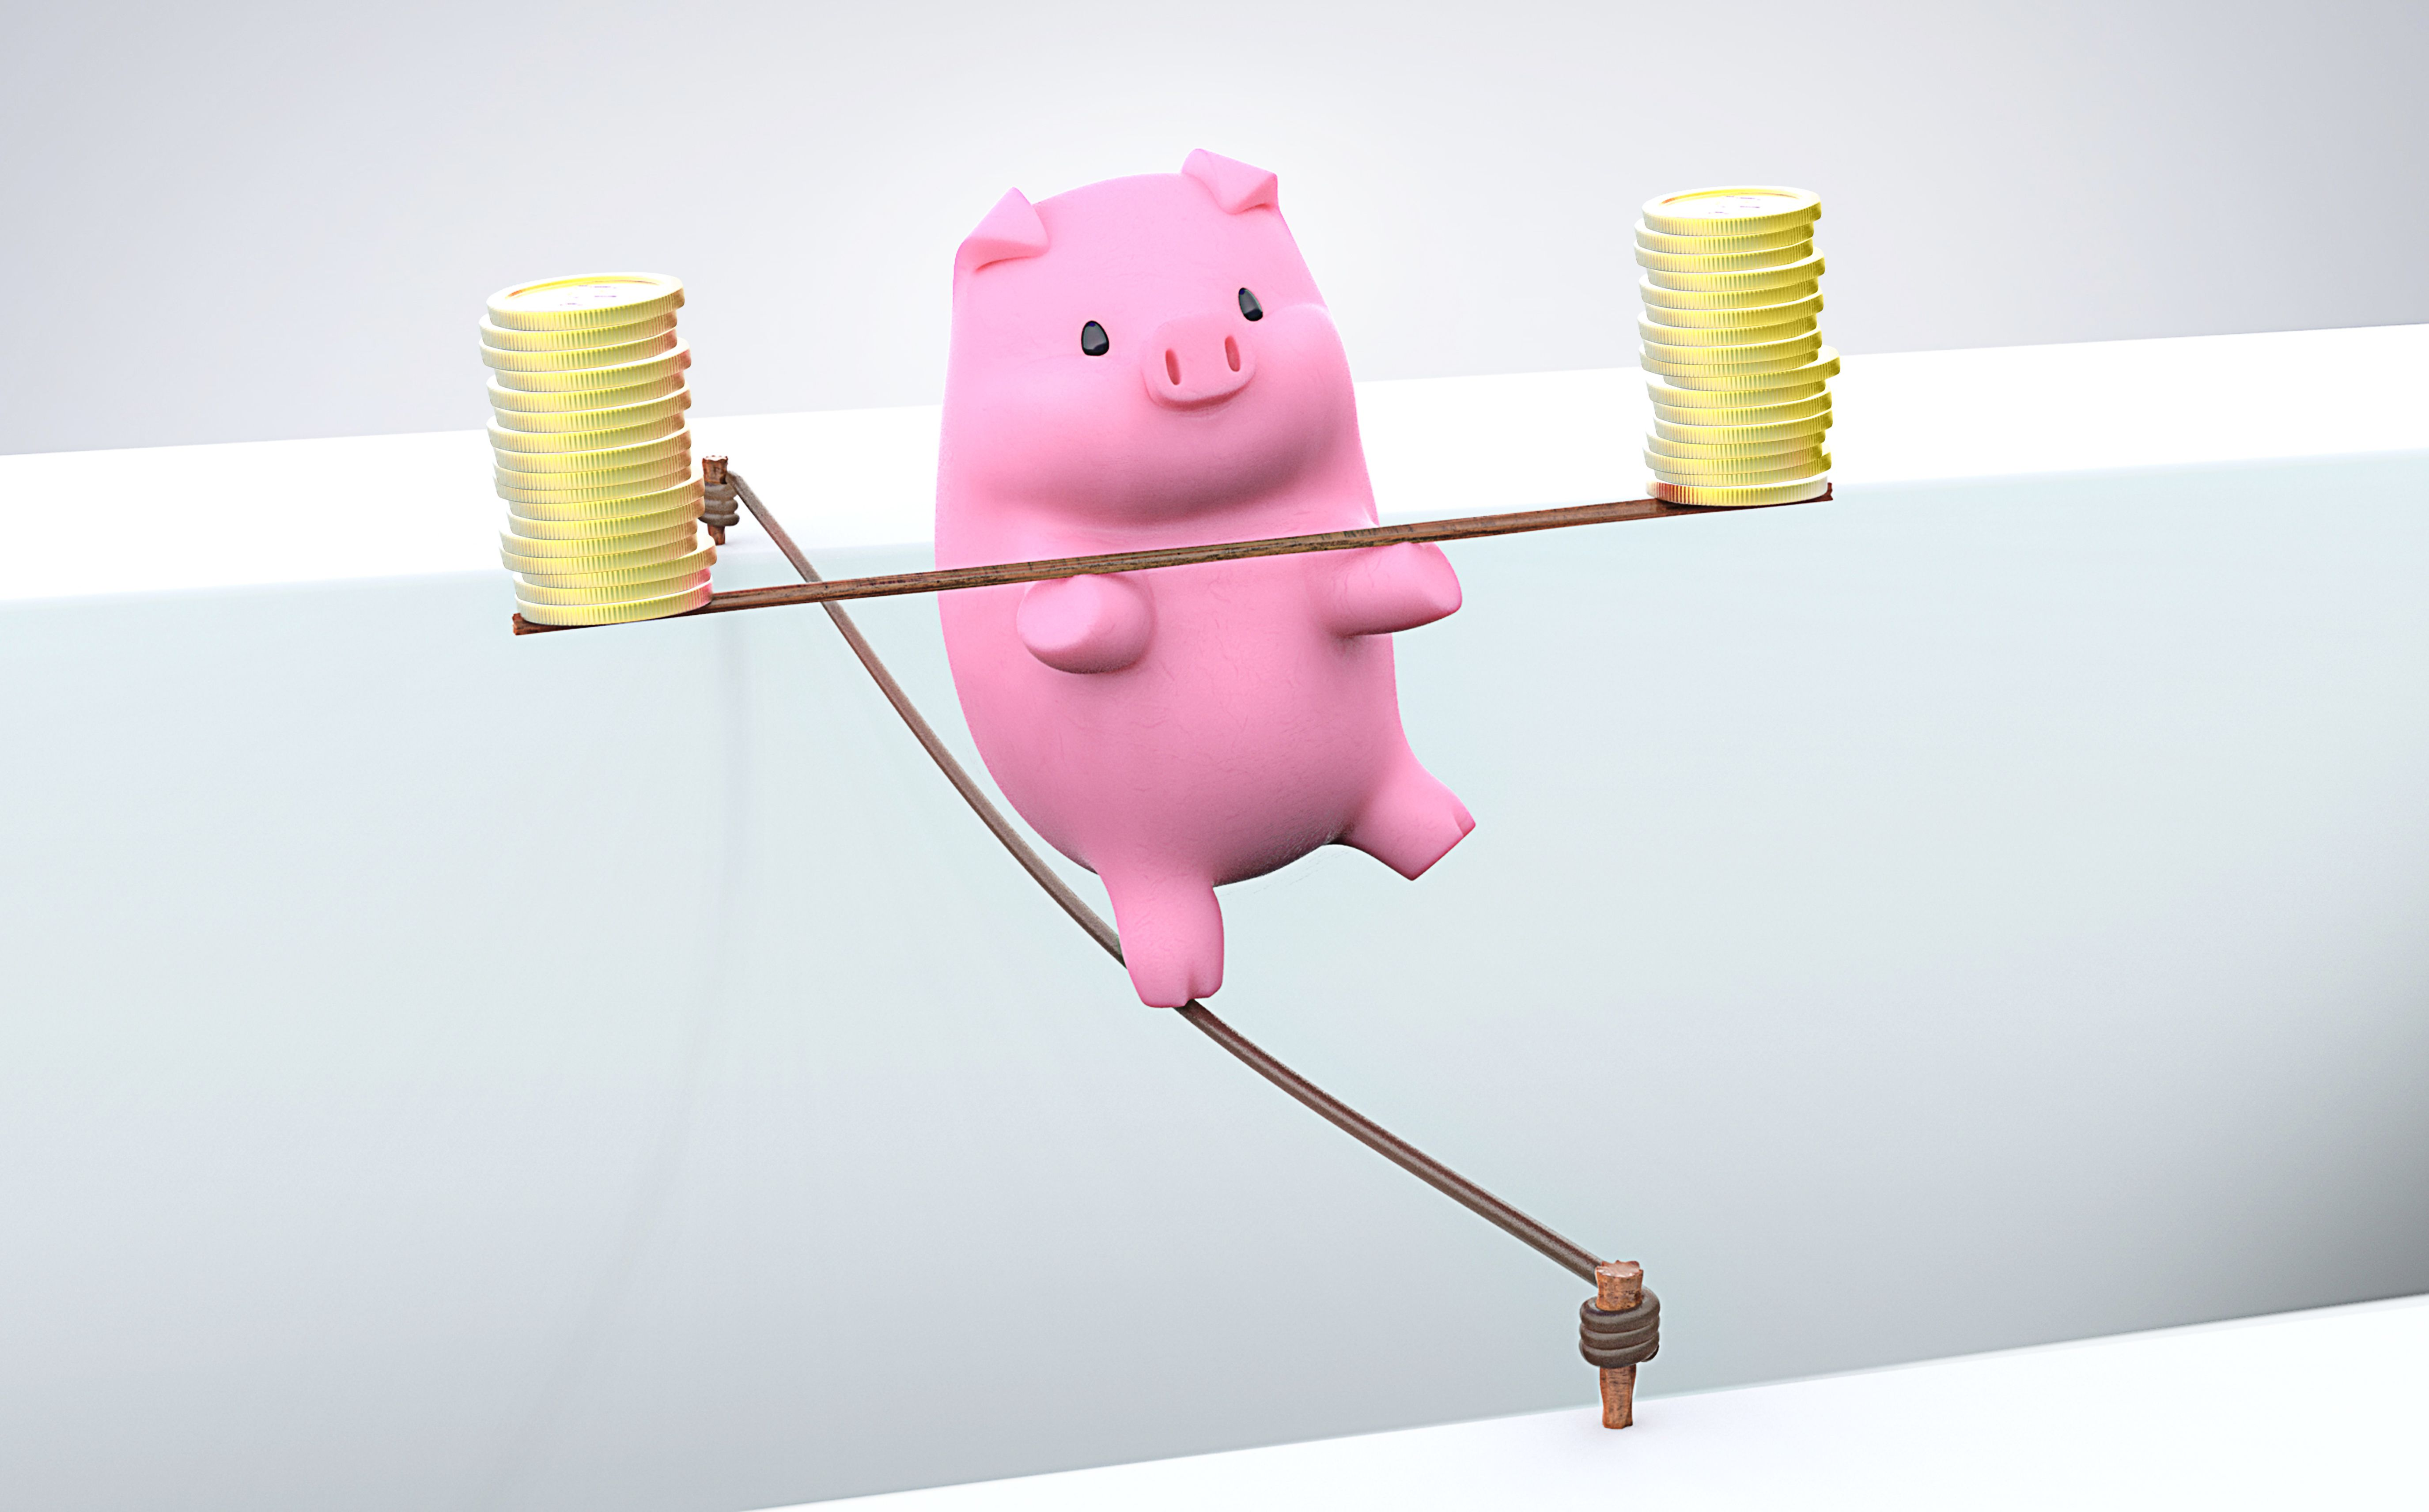 Piggy nank on a tight rope balancing gold coins